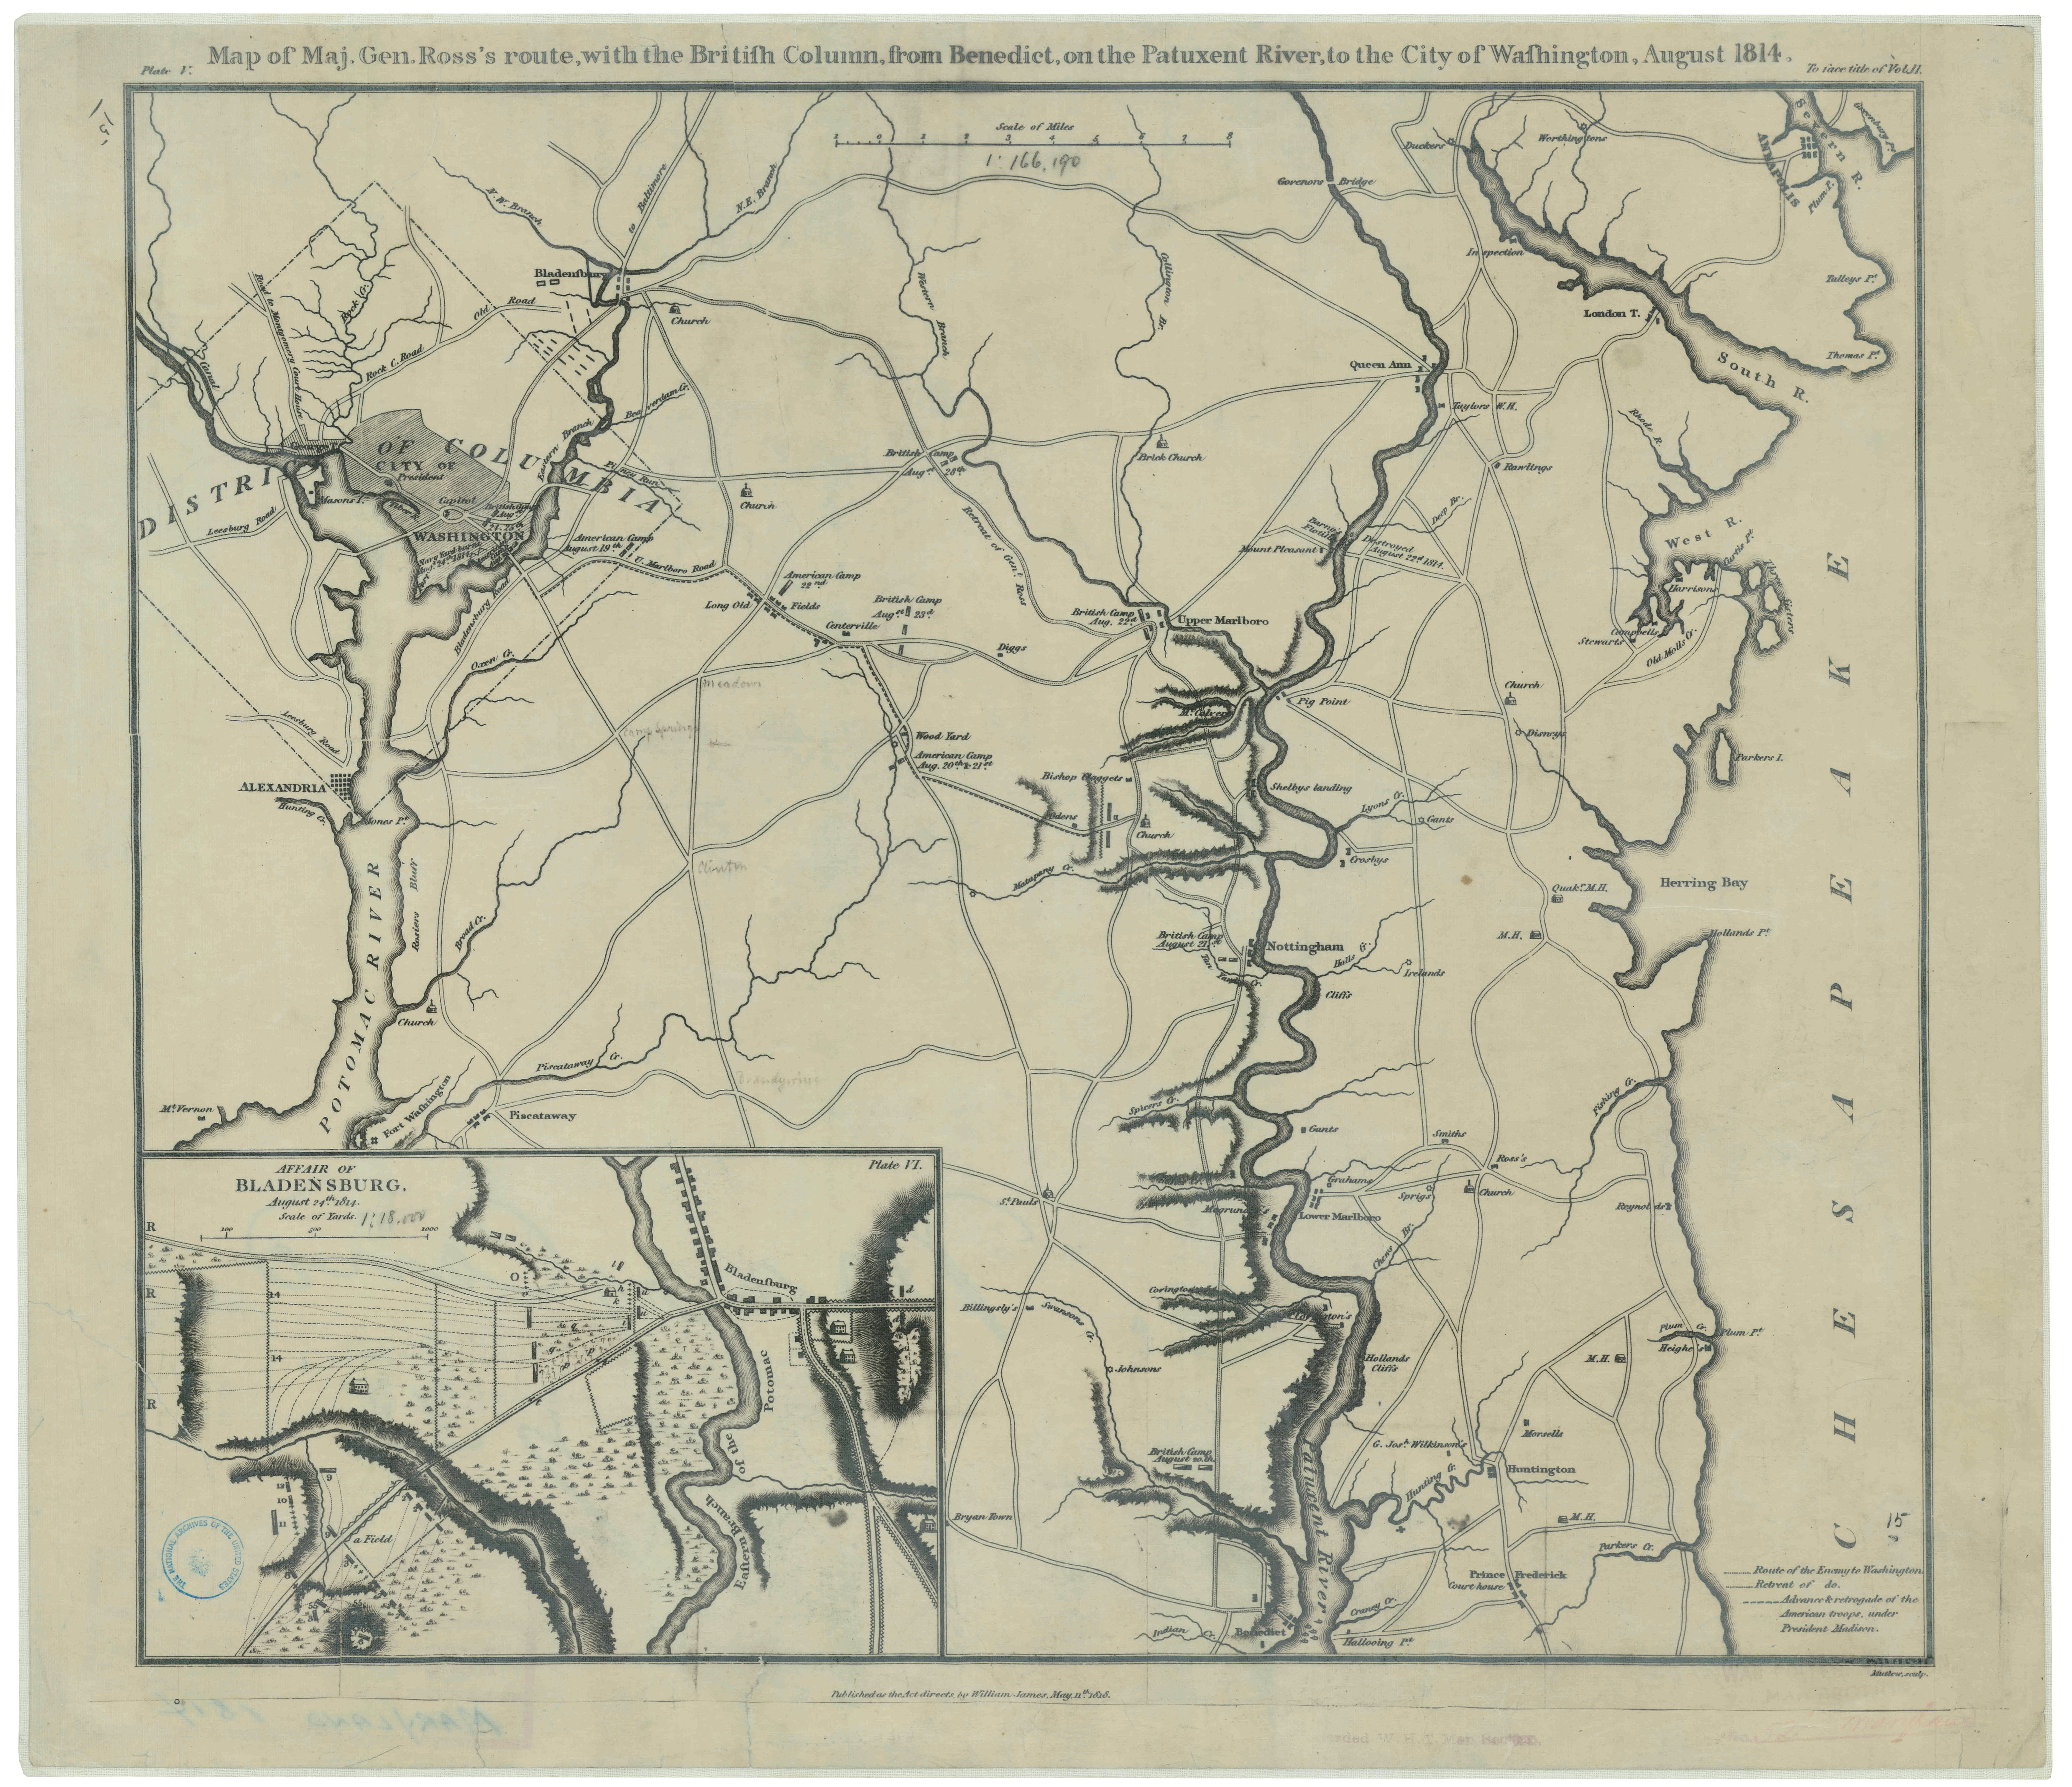 Map of Maj. Gen. Ross's route, with the British Column, from Benedict, on the Putuxant River, to the City of Washington, August 1818. (Records of the Office of the Chief of Engineers, National Archives)